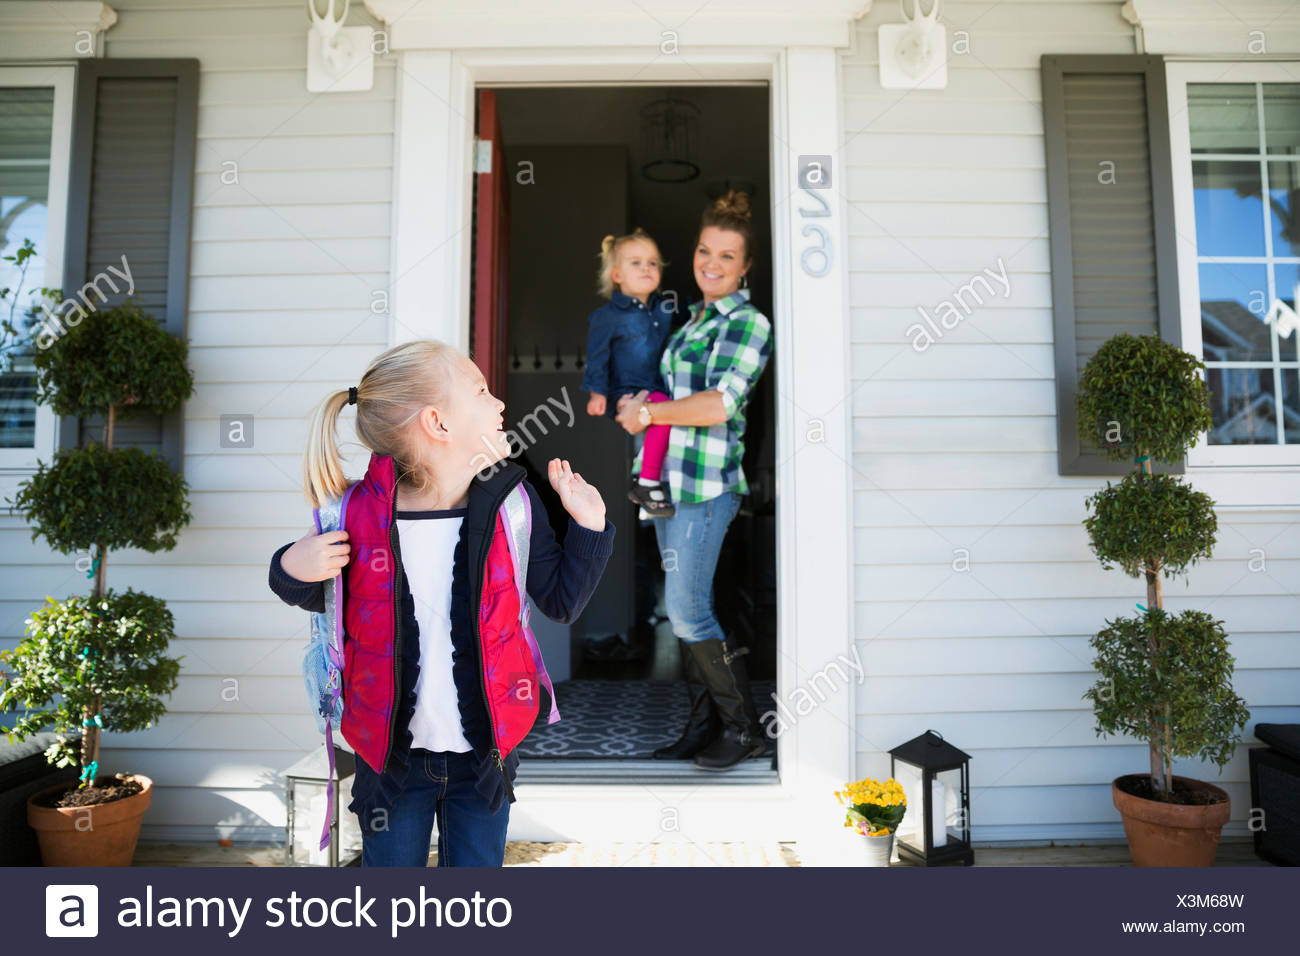 Daughter waving goodbye to mother sister front stoop - Stock Image